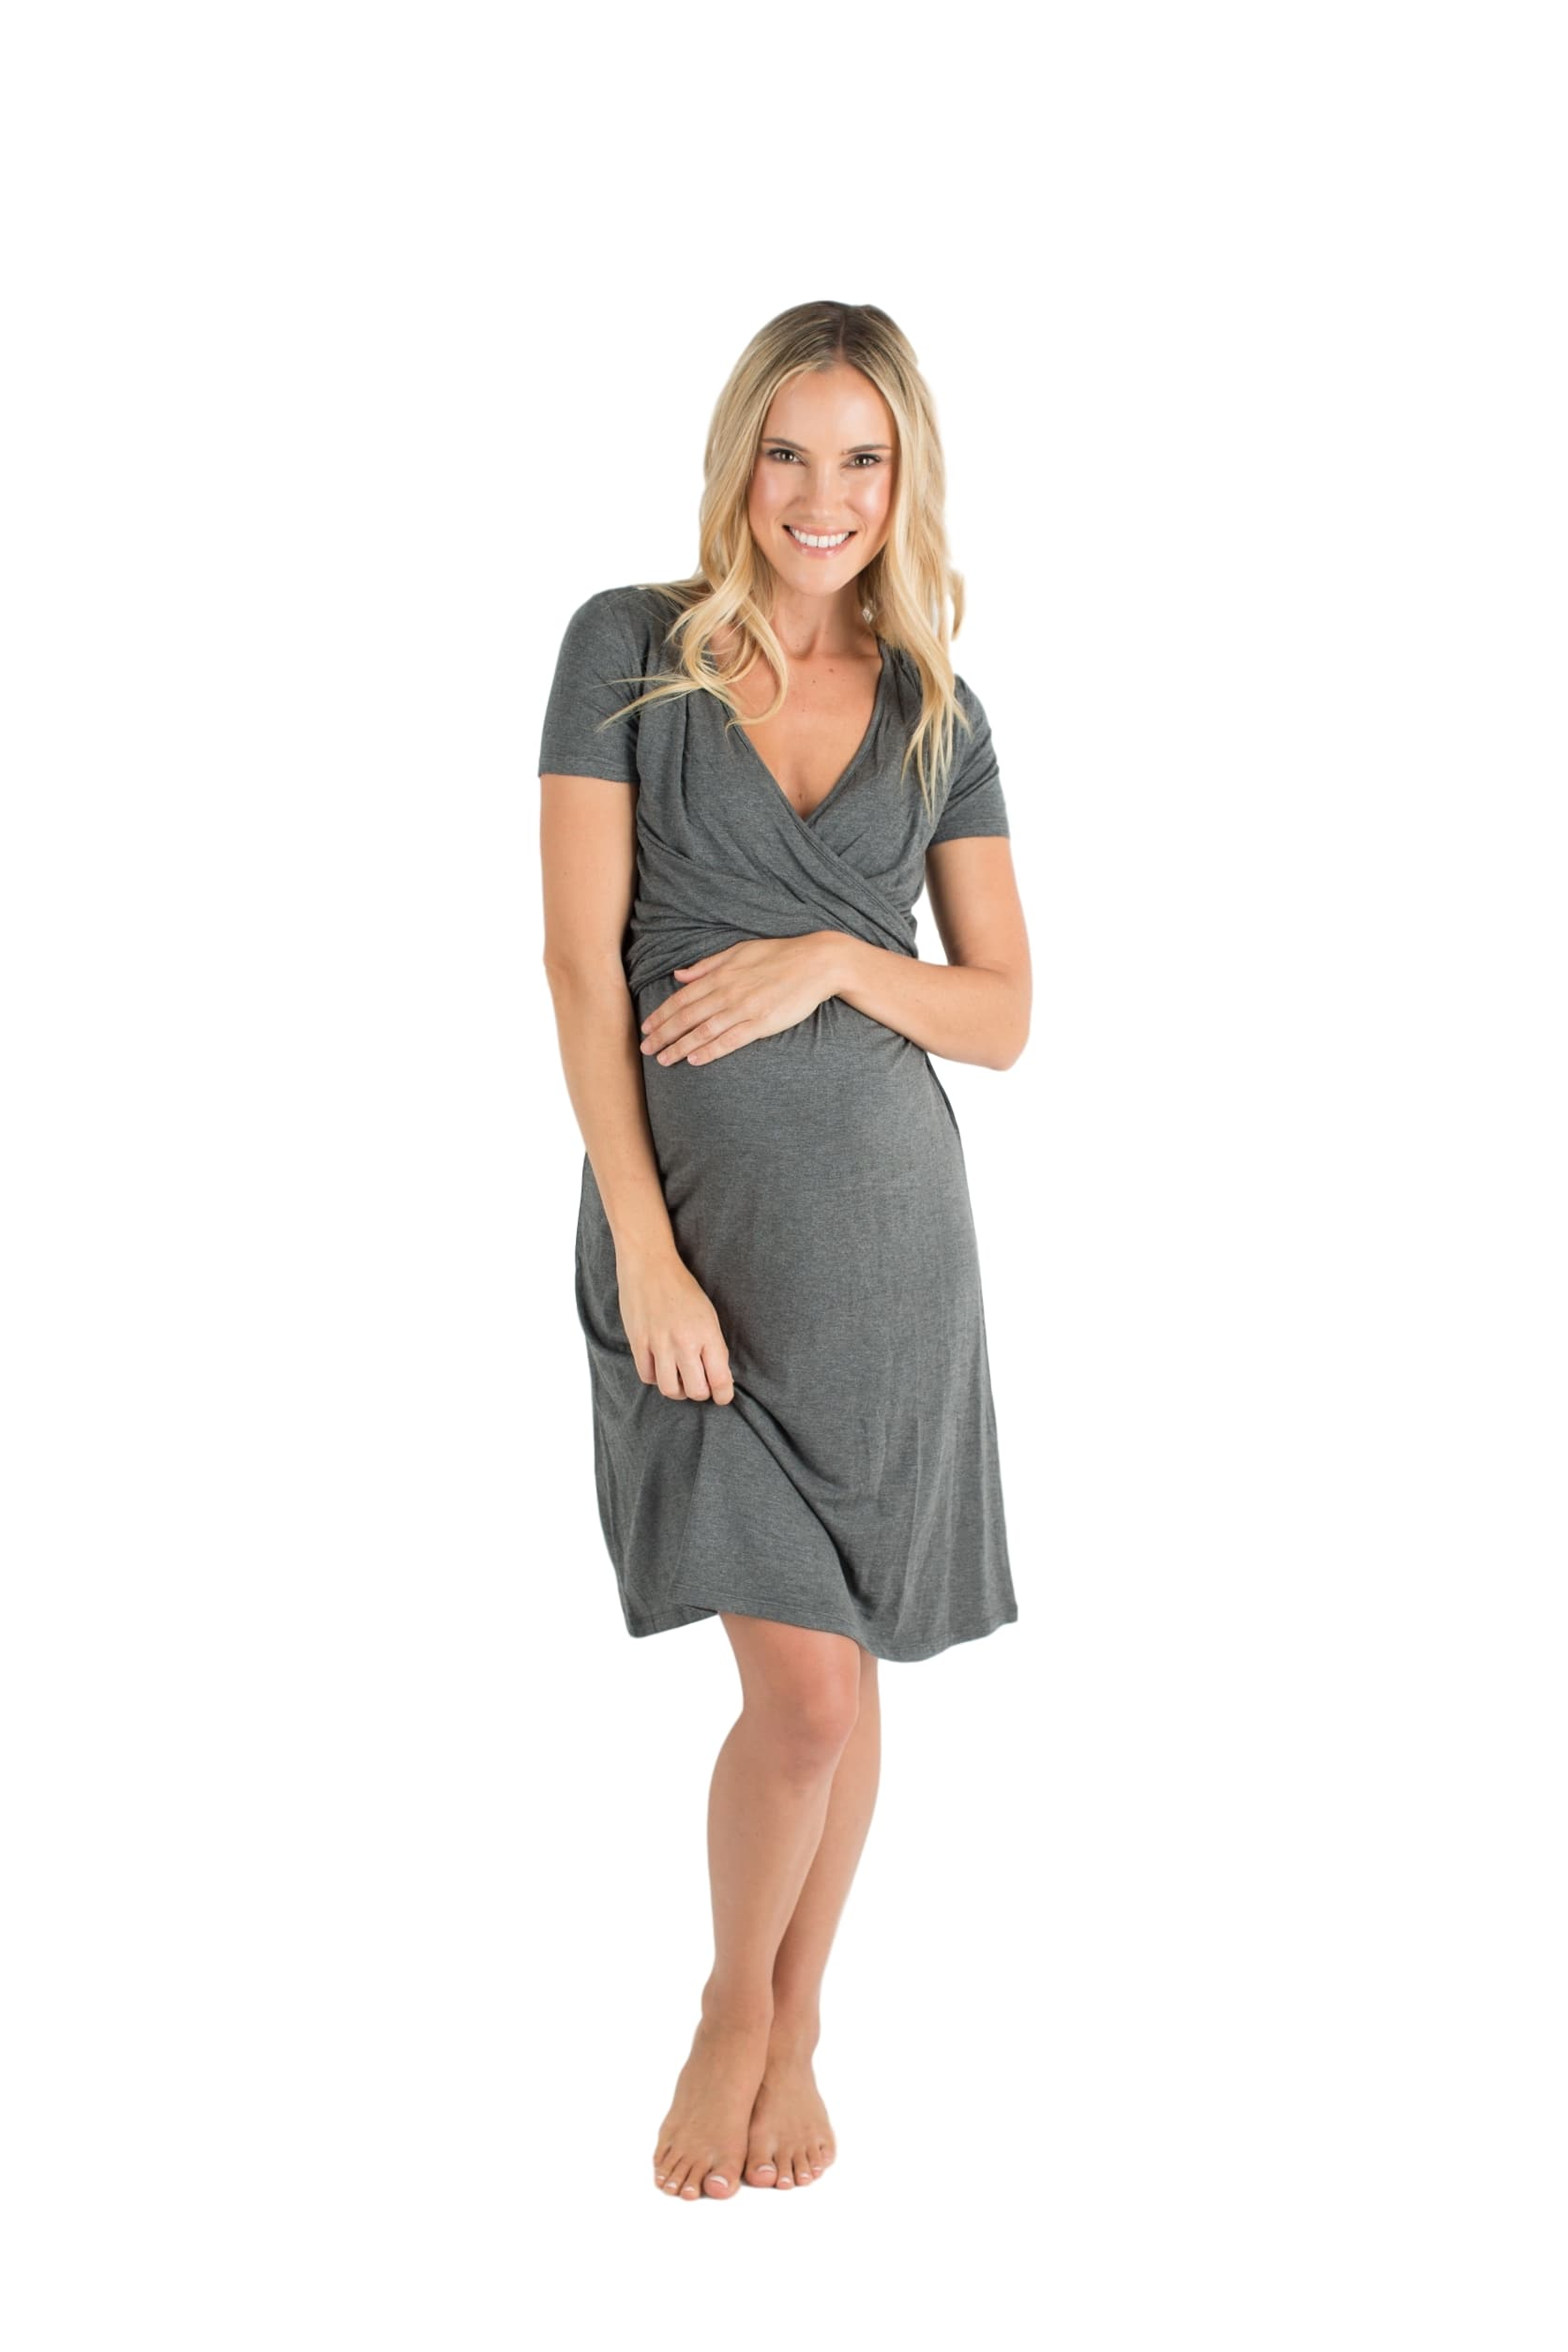 Baby Be Mine The Alyssa Ultra Soft Maternity & Nursing Nightgown Dress